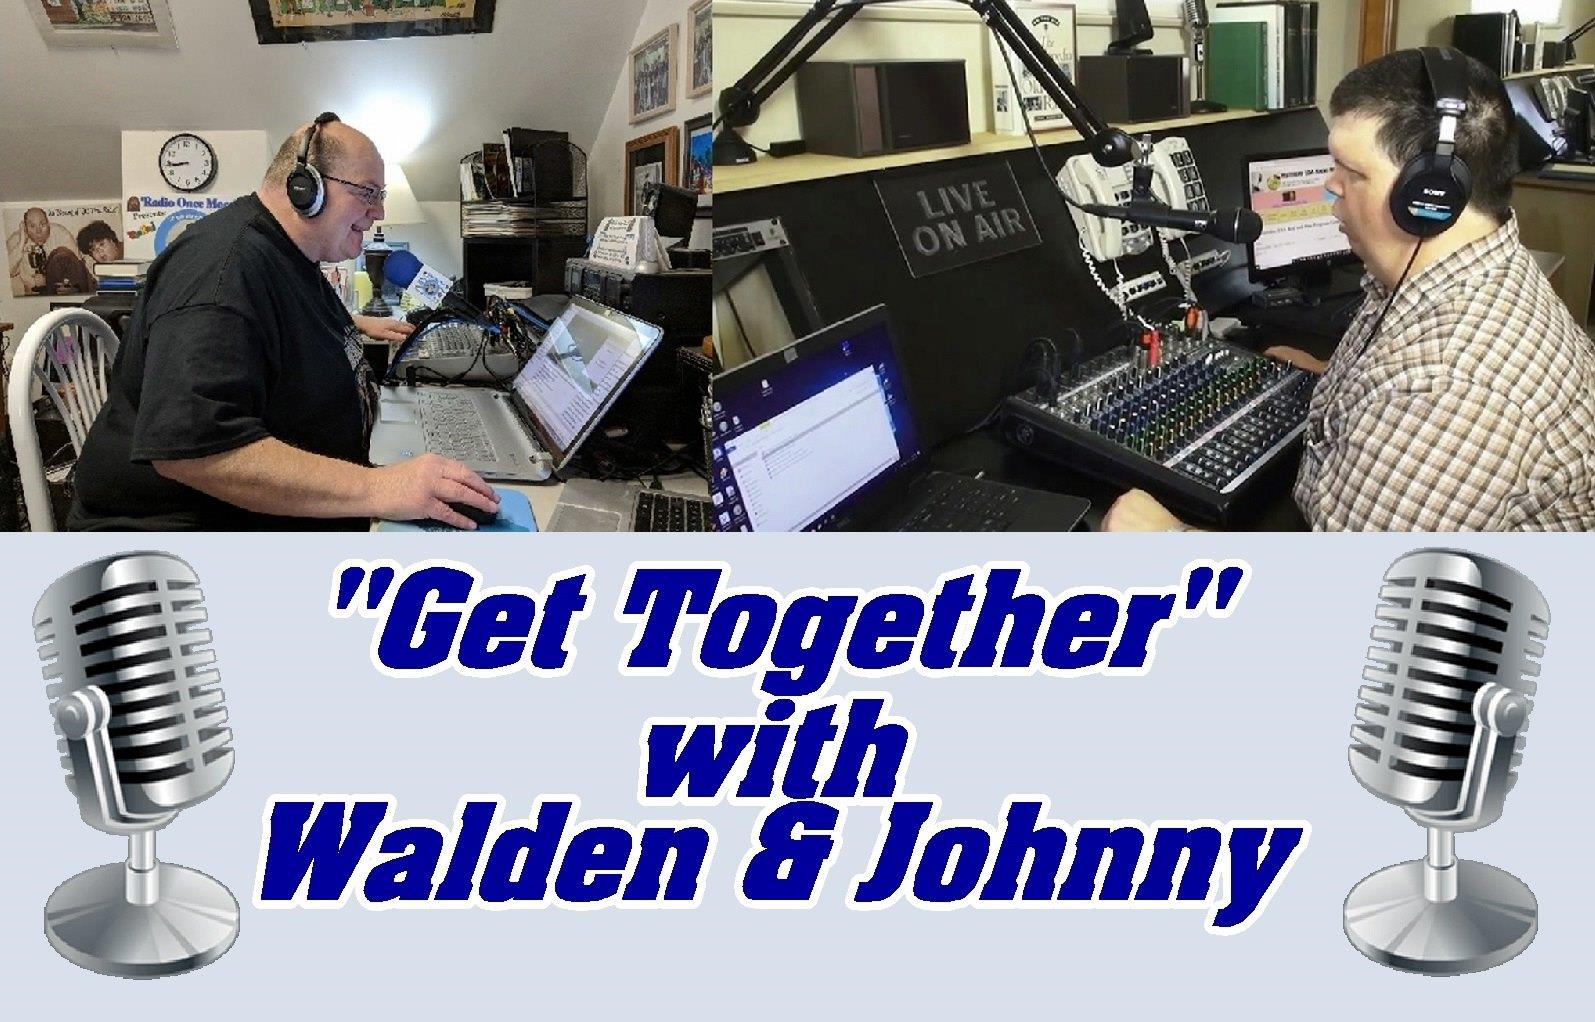 Woo-Hoo Extra - Get Together with Walden & Johnny